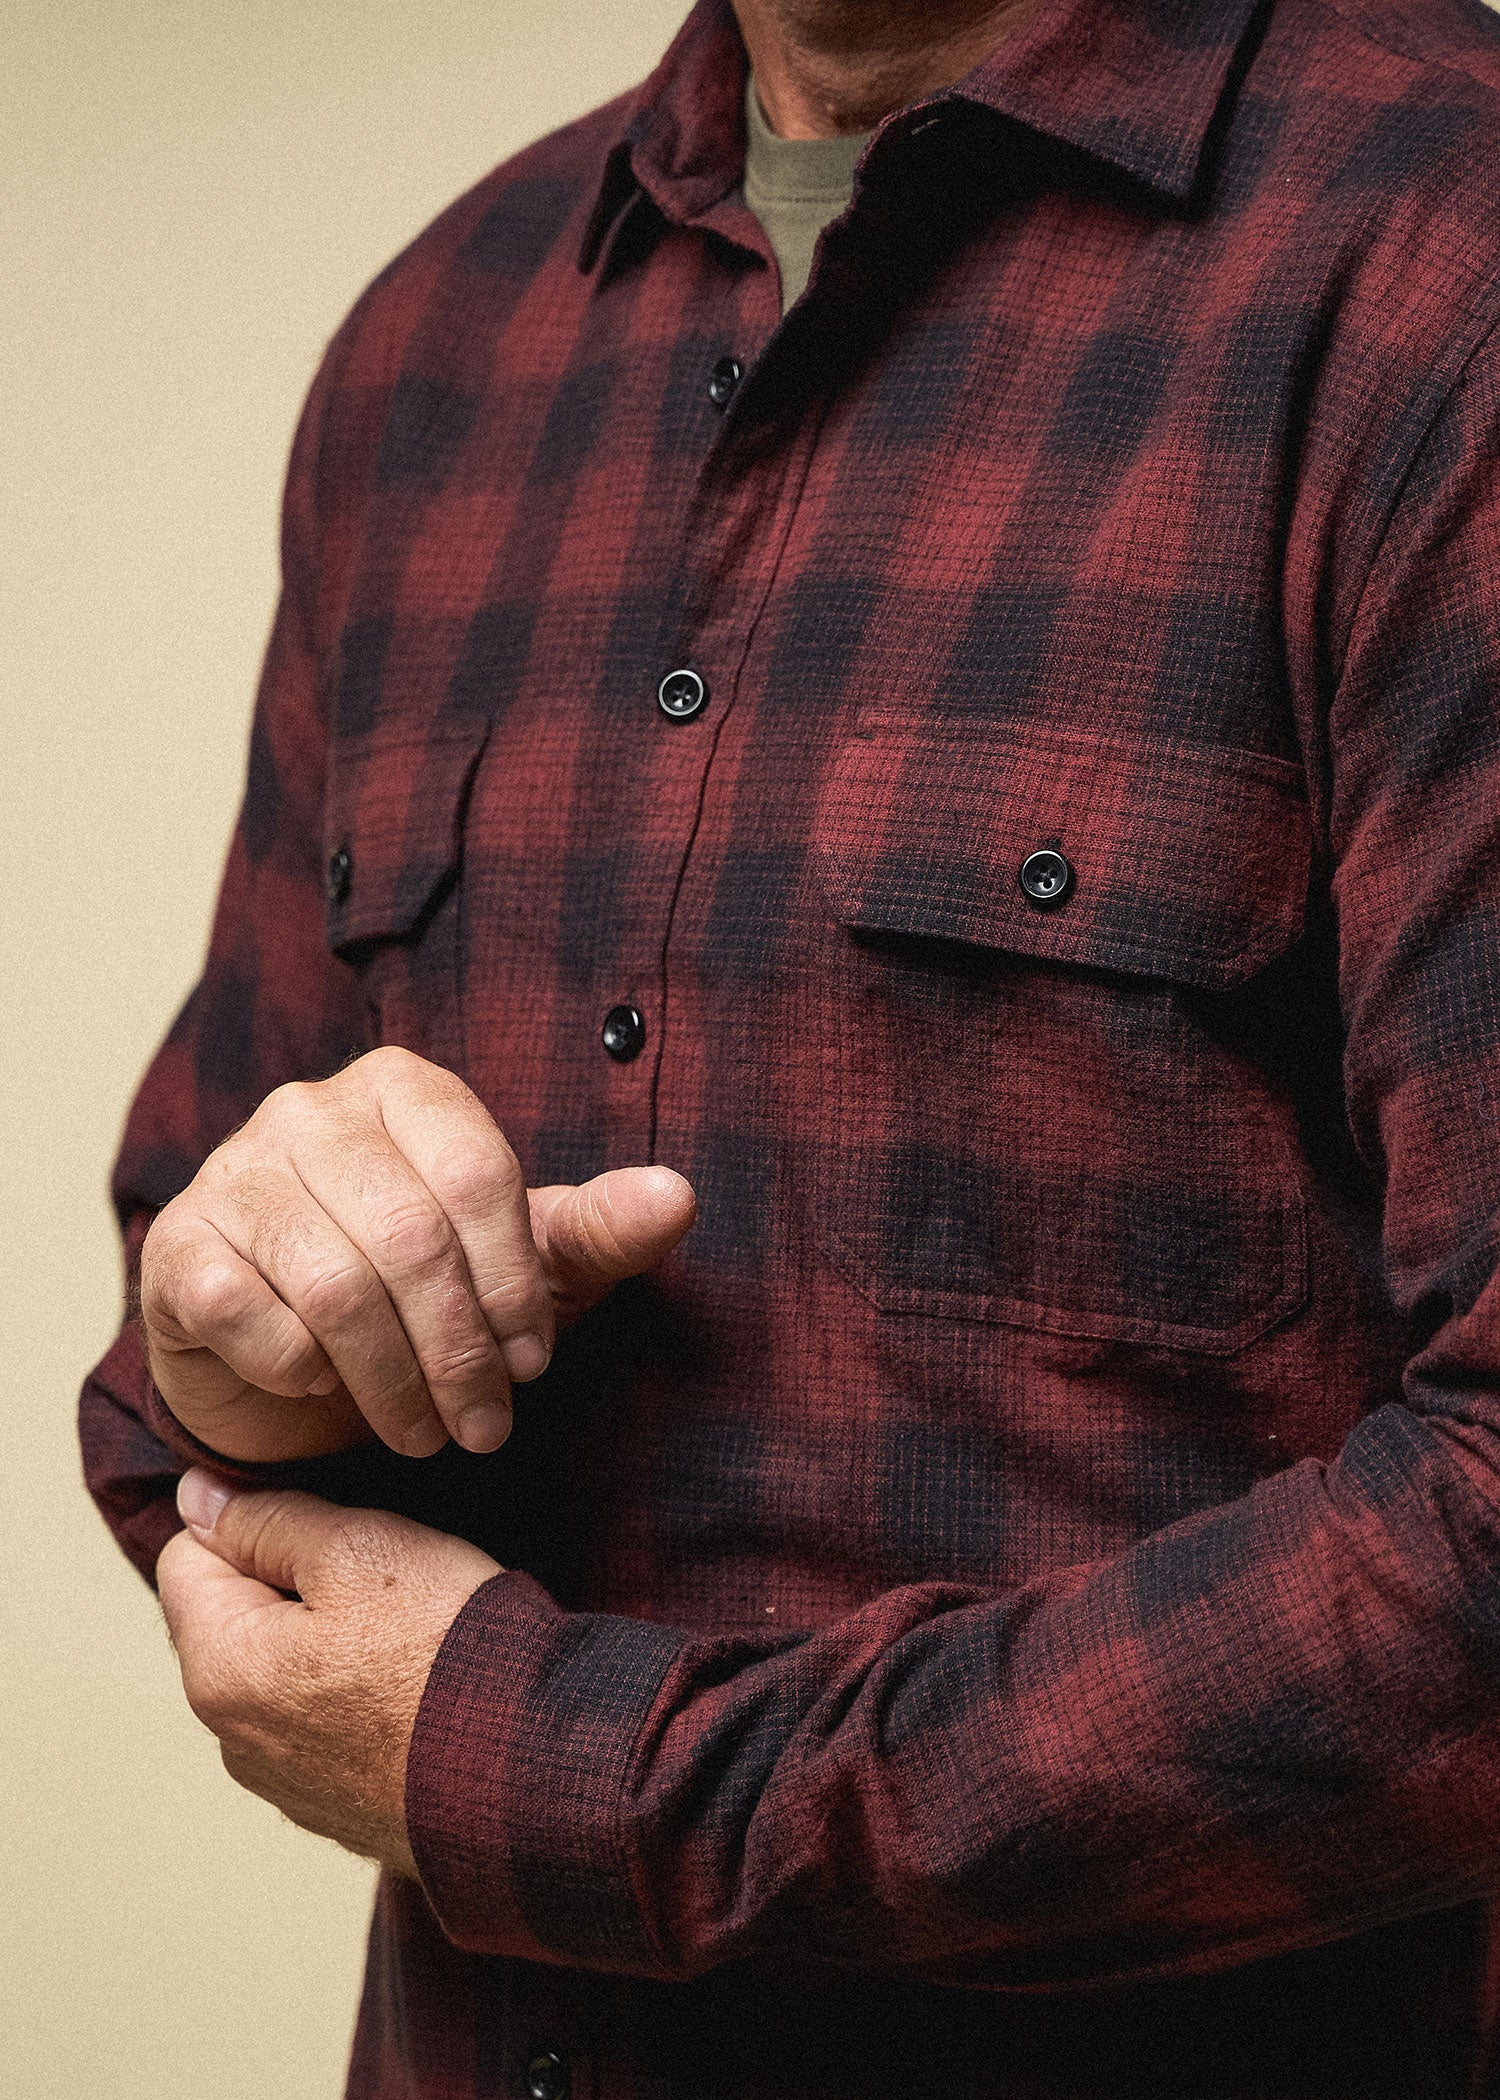 Longjohn-tallmens-heavyflannel-armyplaid-sumacred-closeup